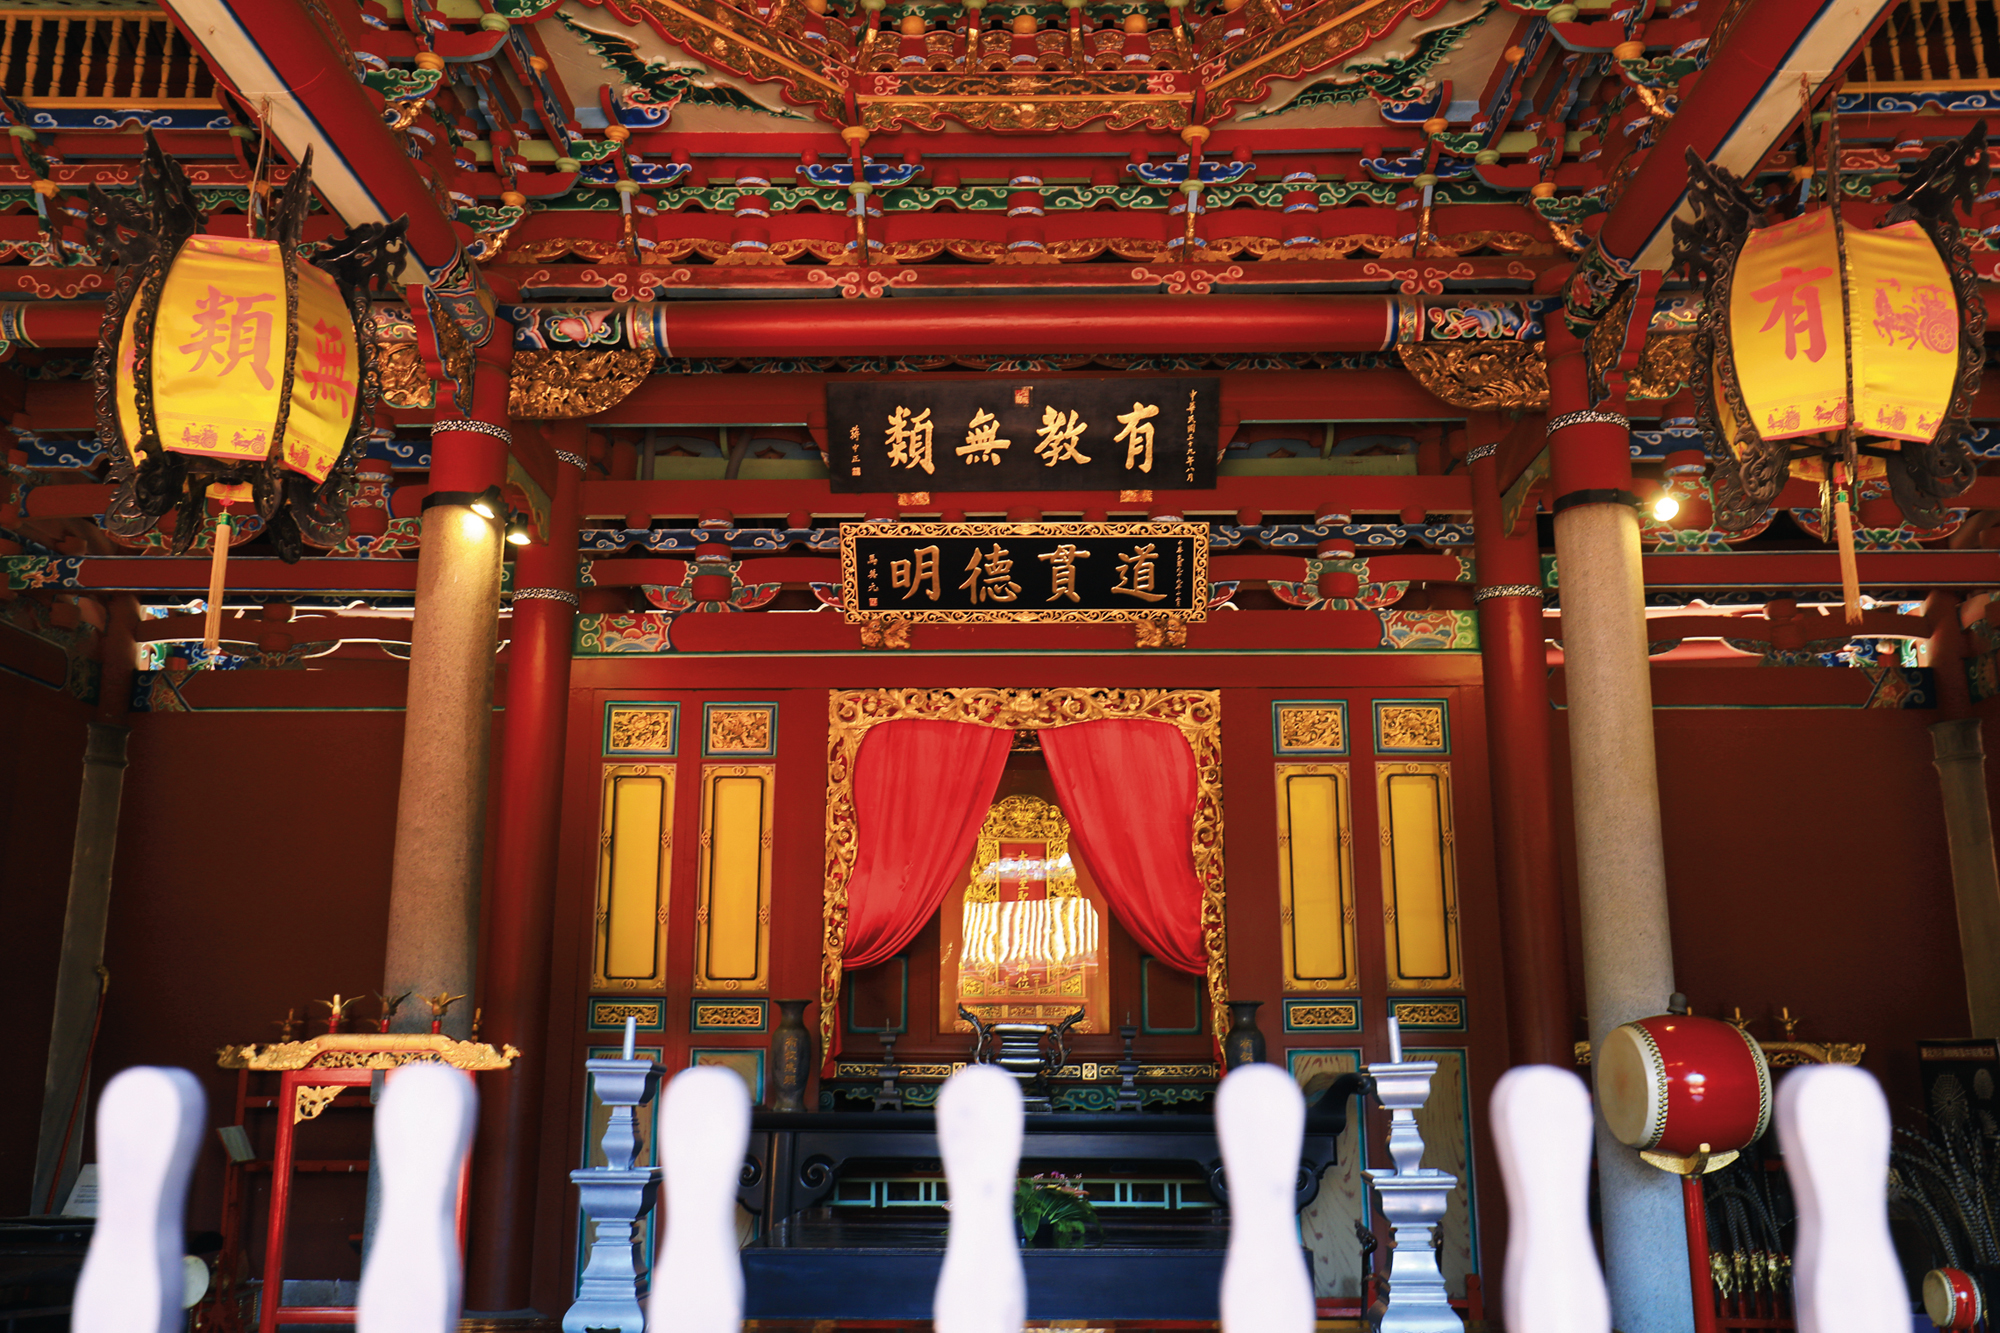 The stately Taipei Confucius Temple has occupied its site of more than 1.3 hectares for nearly 80 years. In 1990, it was designated a municipal historic site.